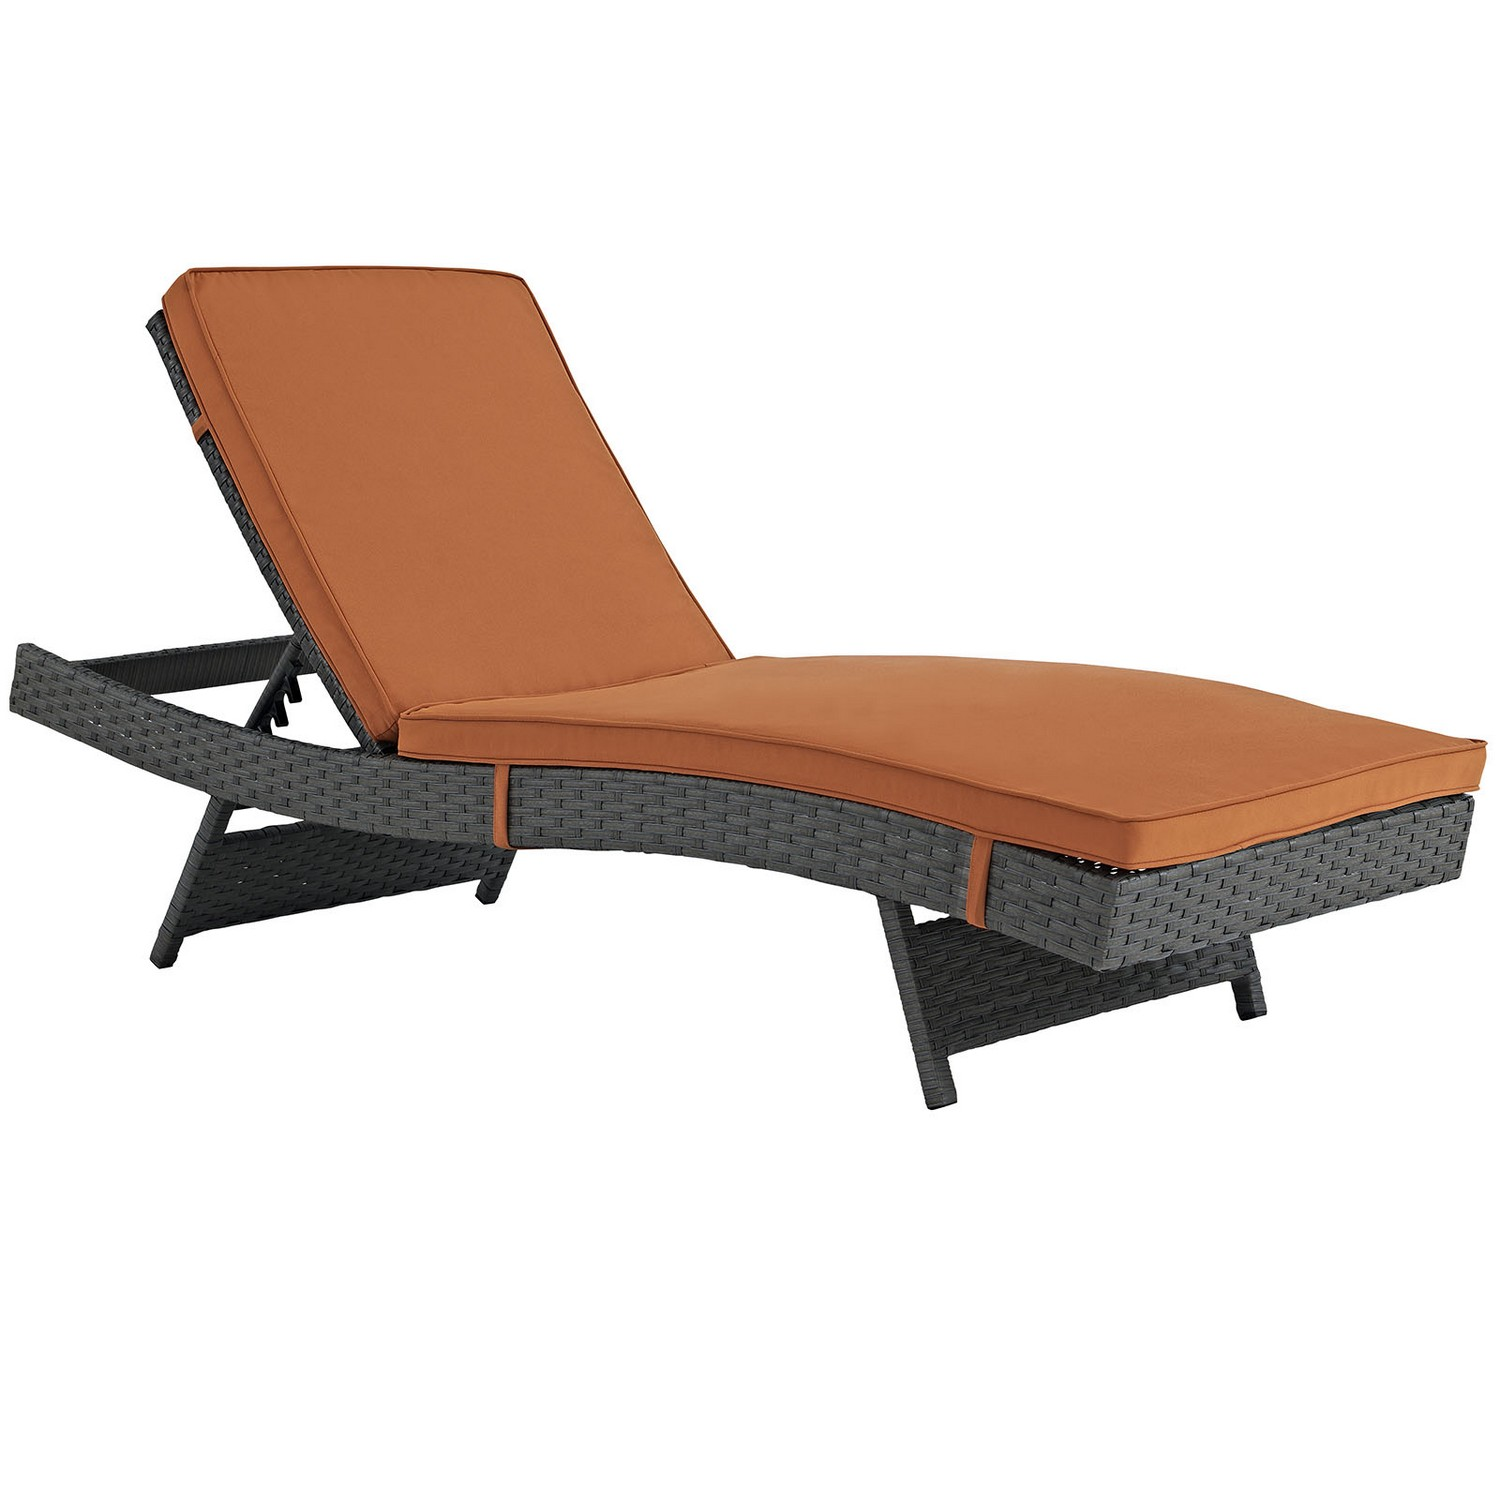 Modway Sojourn Outdoor Patio Sunbrella Chaise - Canvas Tuscan